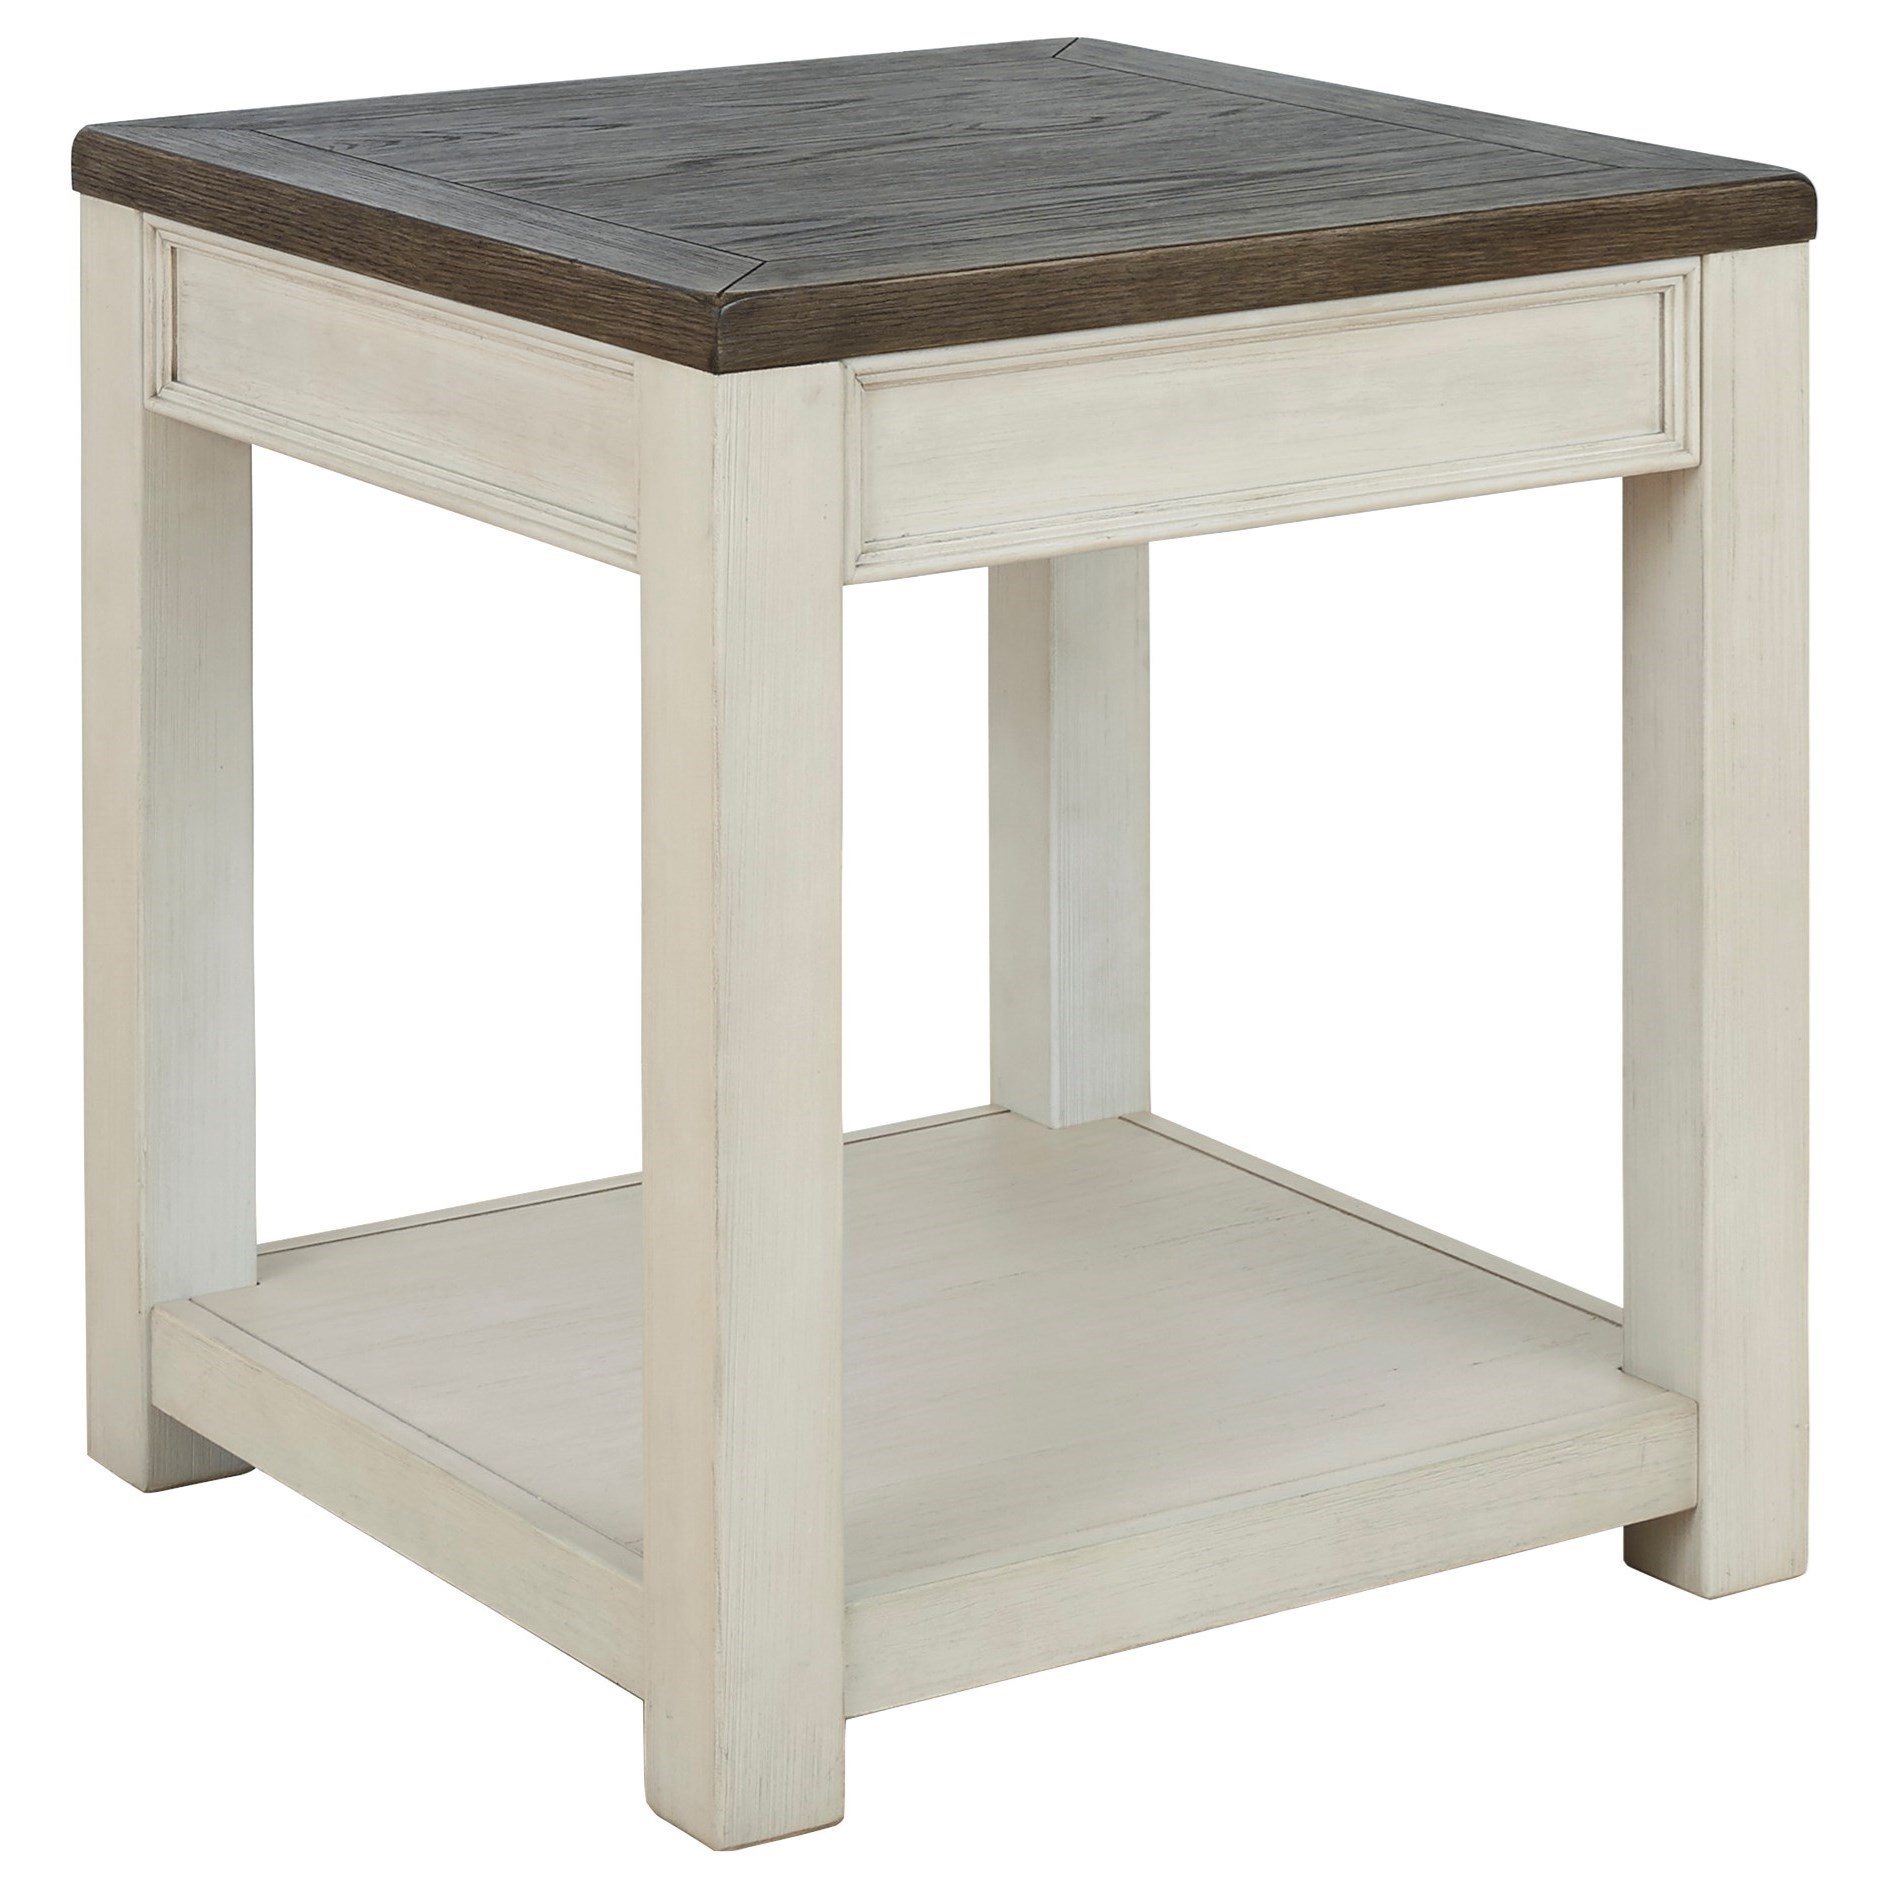 Bolanburg Square End Table by Signature Design by Ashley at Darvin Furniture